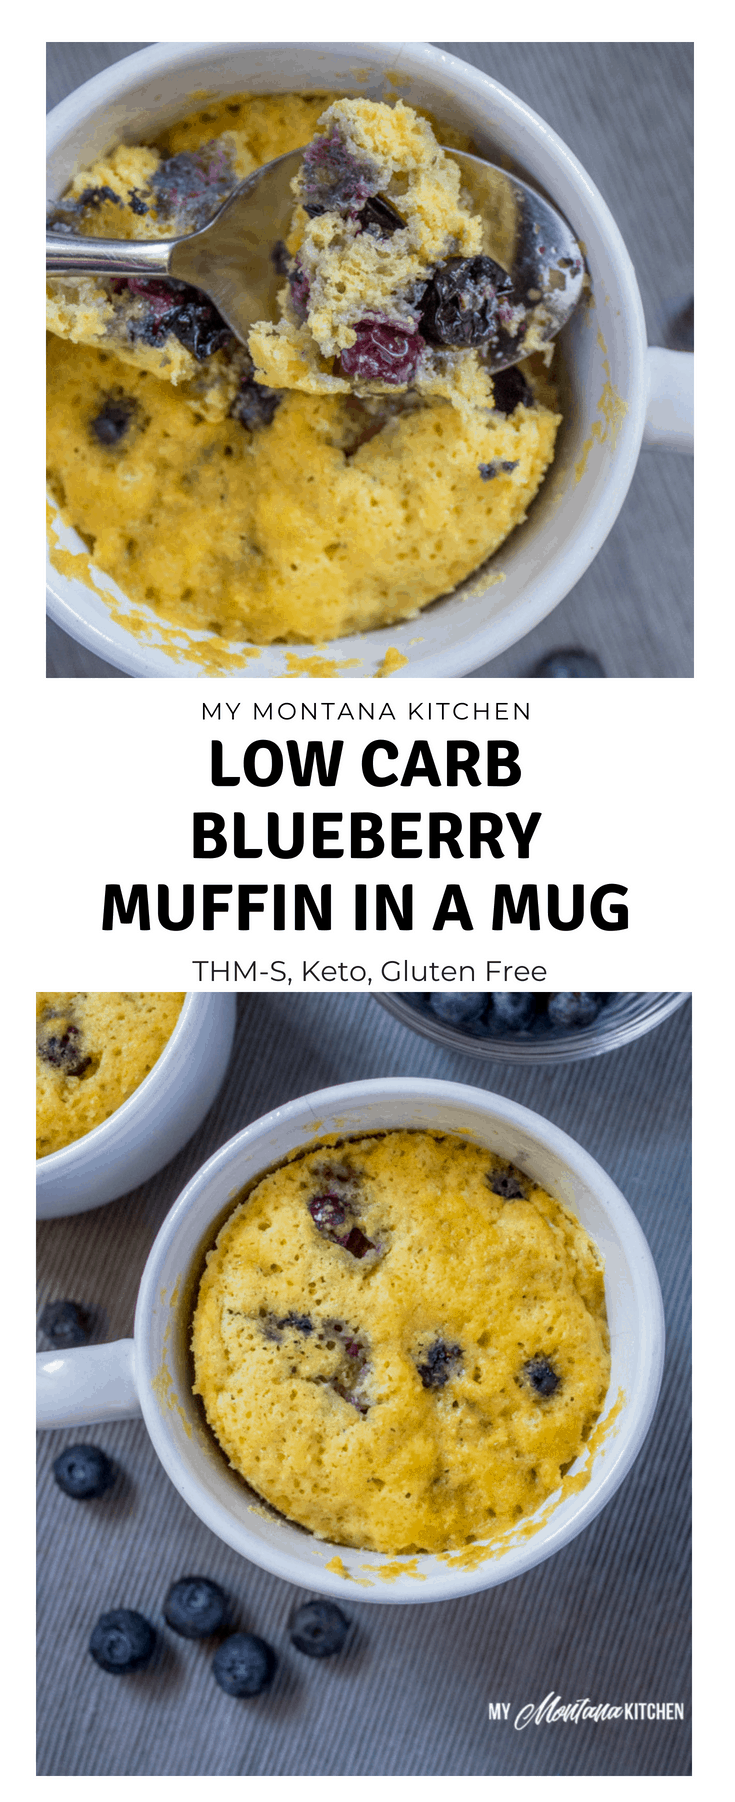 Sweet, tender, and bursting with blueberries, this Low Carb Sugar Free Blueberry Muffin in a Mug can be in your hands in less than 5 minutes! (And, you don't even have to turn on your oven!) You would never know this blueberry muffin is sugar free! #trimhealthymama #thm #lowcarb #glutenfree #sugarfree #blueberrymuffin #blueberries #muffininamug #mim #mymontanakitchen #lowcarbmuffin